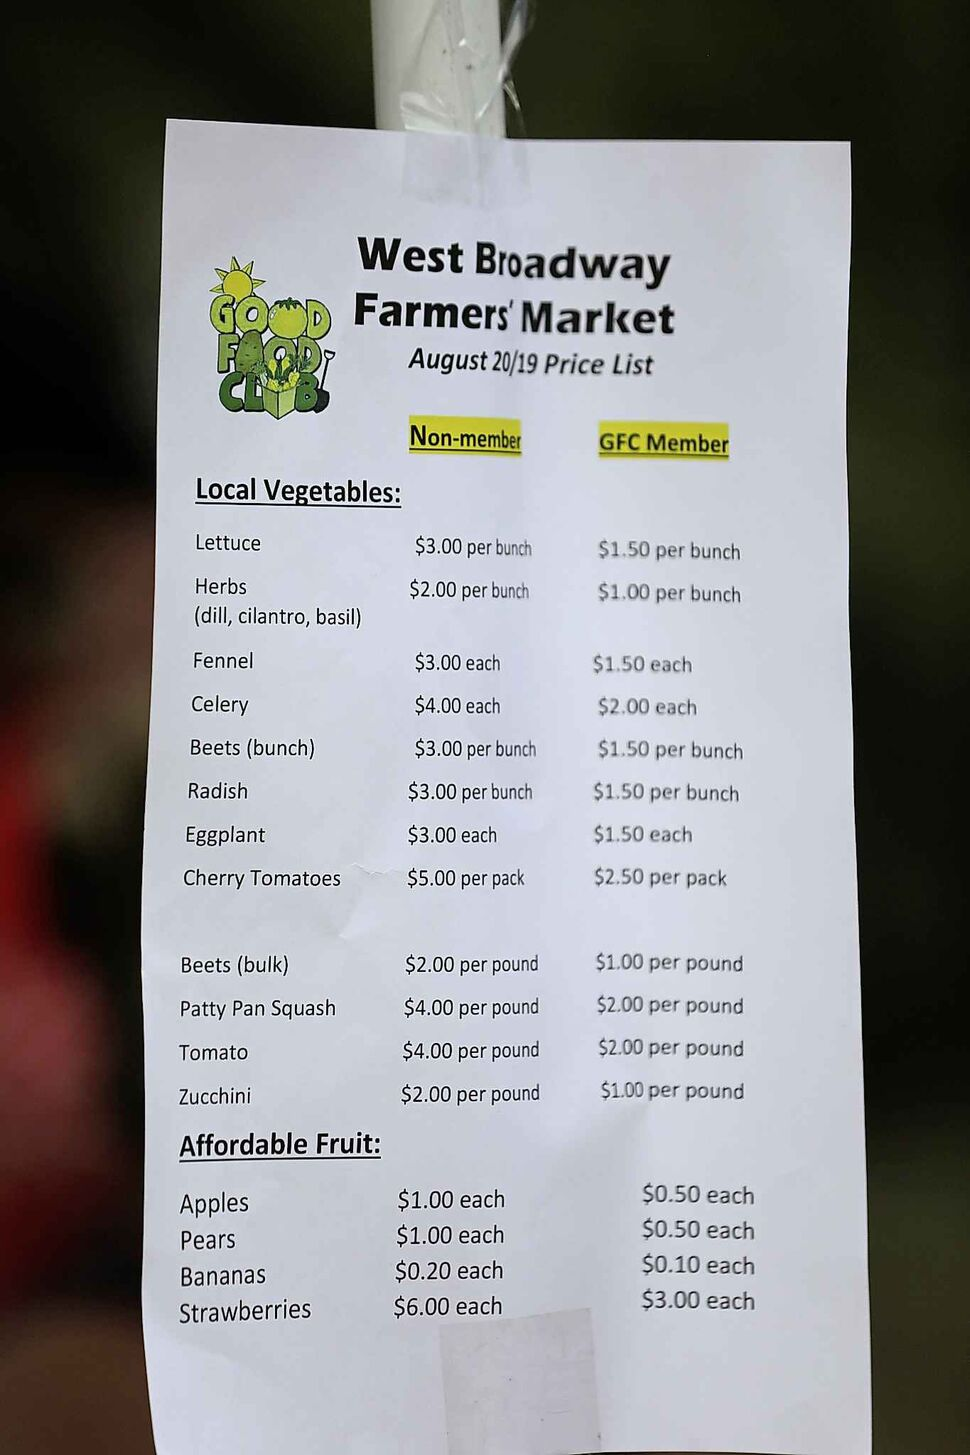 West Broadway farmer's market aims to supply affordable fresh food to people in the neighbourhood.